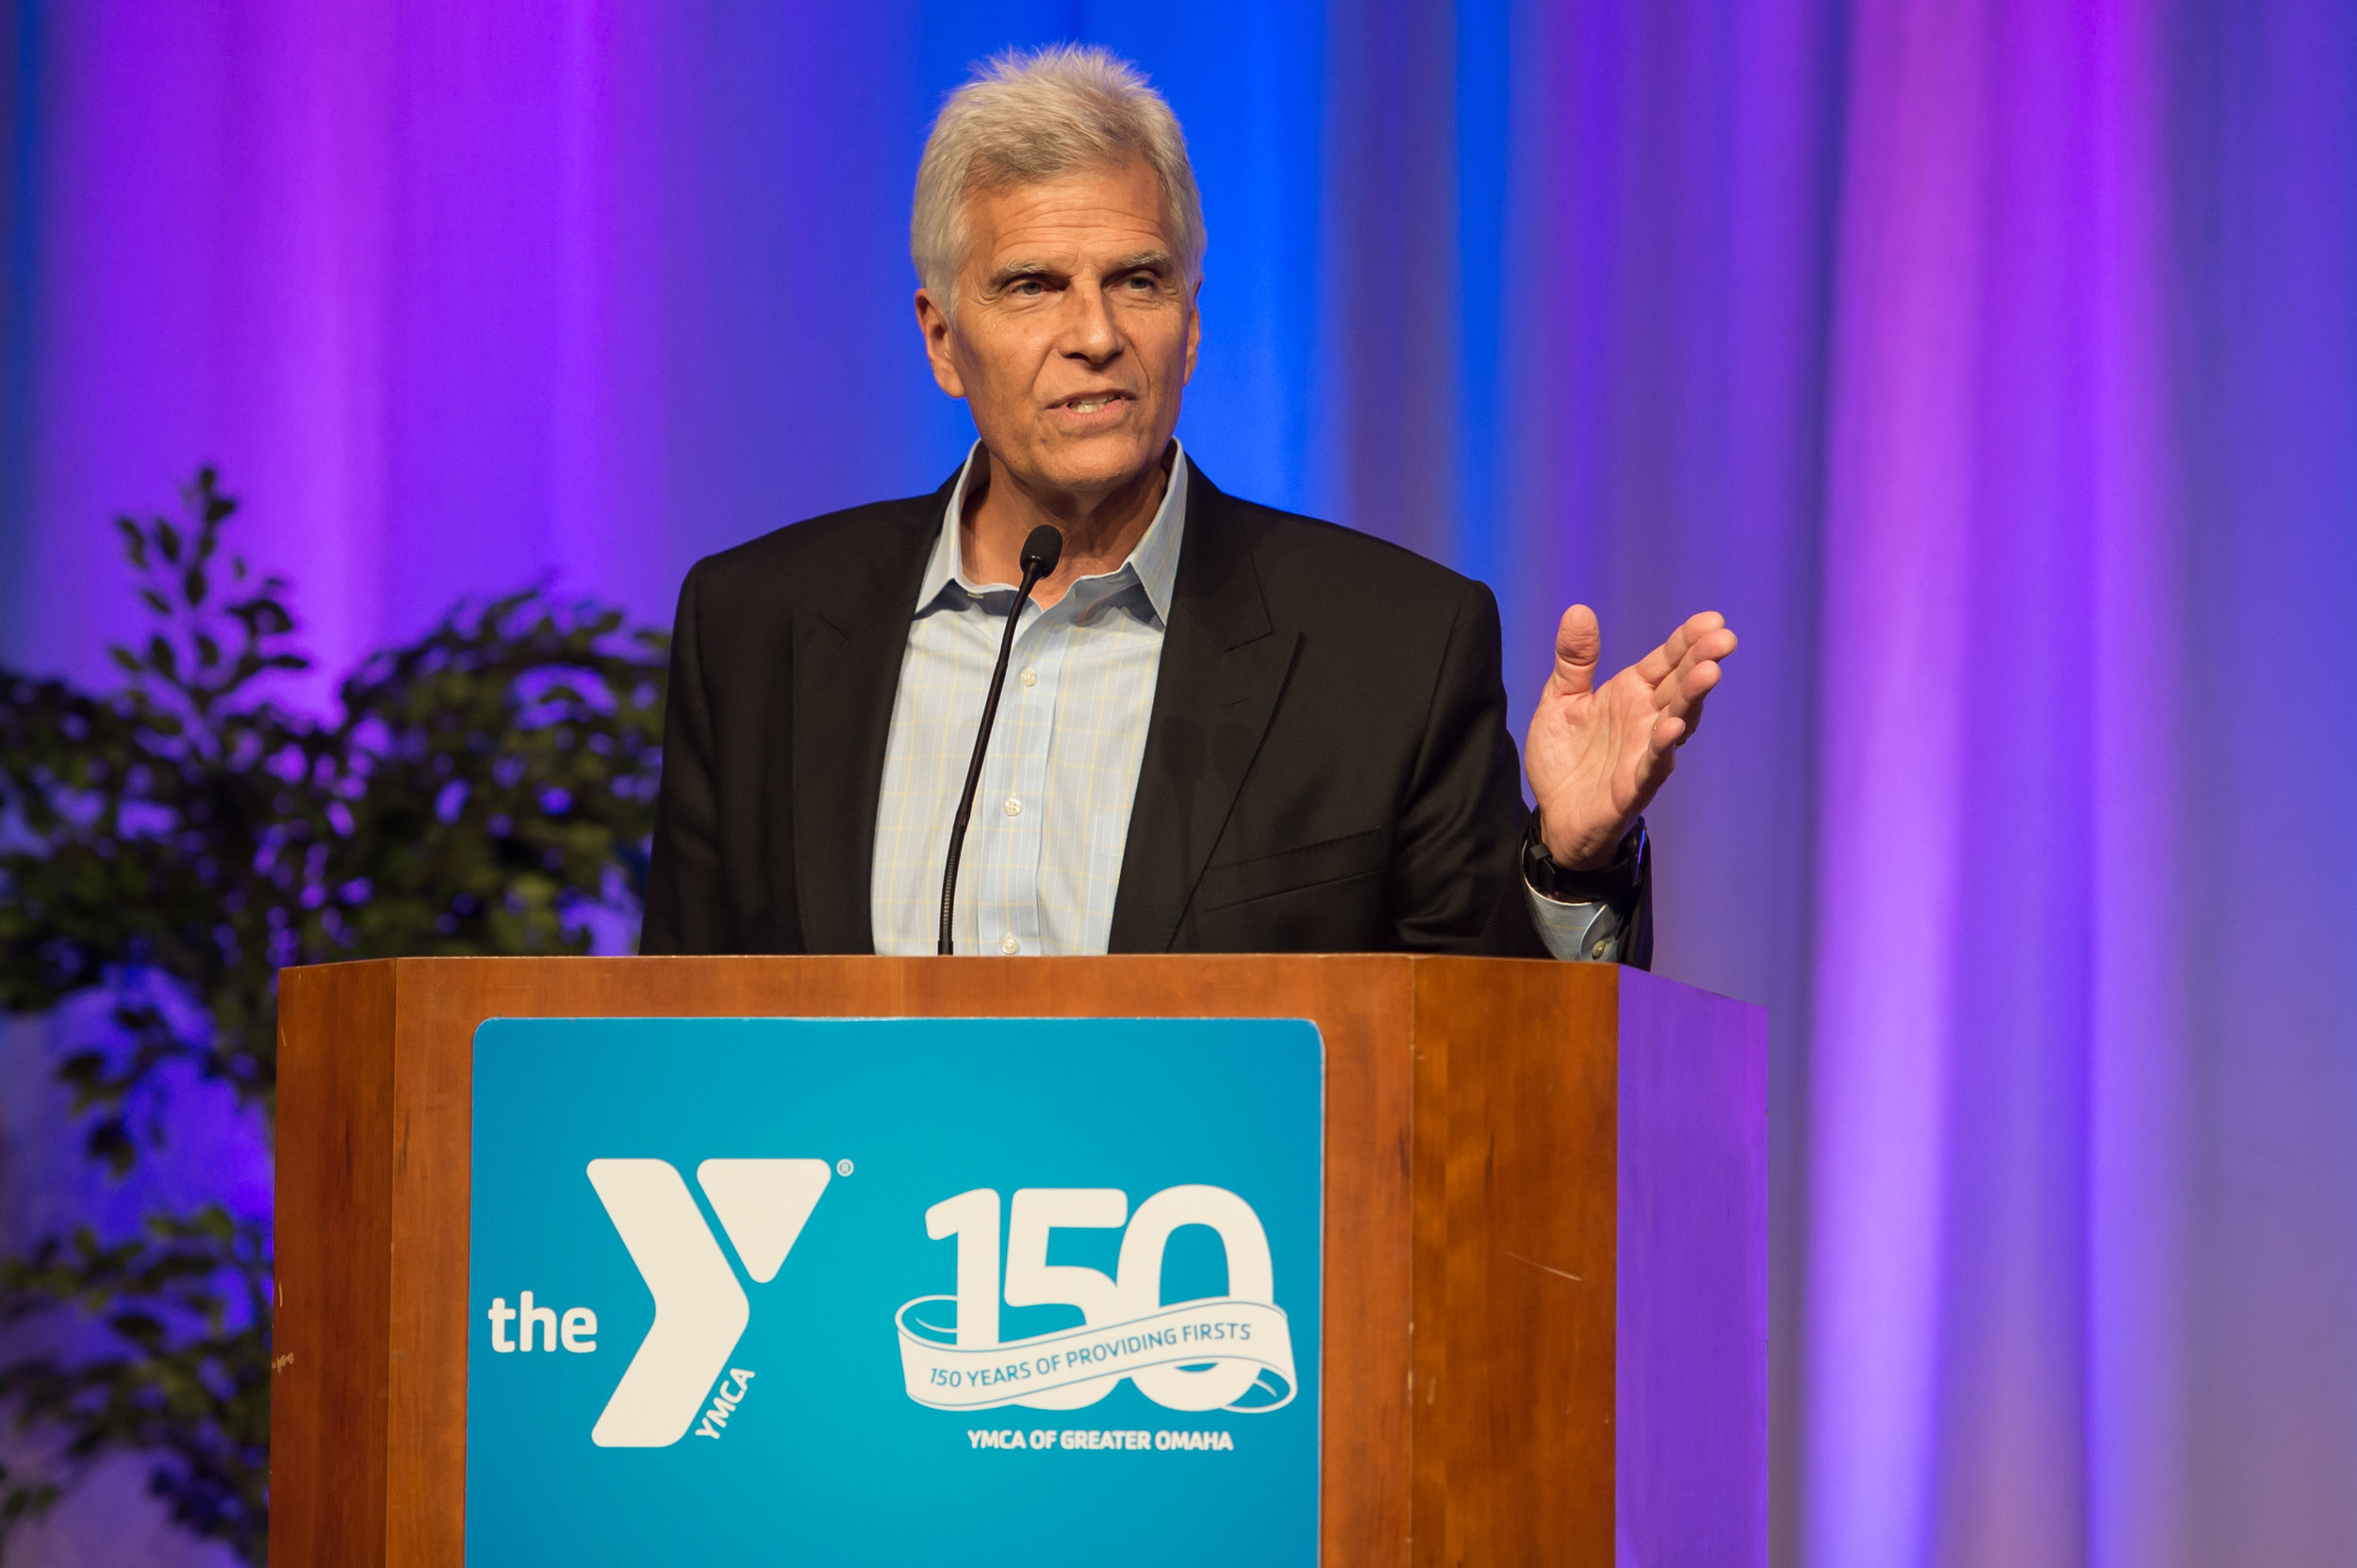 Mark Spitz speaks at the YMCA of Greater Omaha's Anniversary Gala.